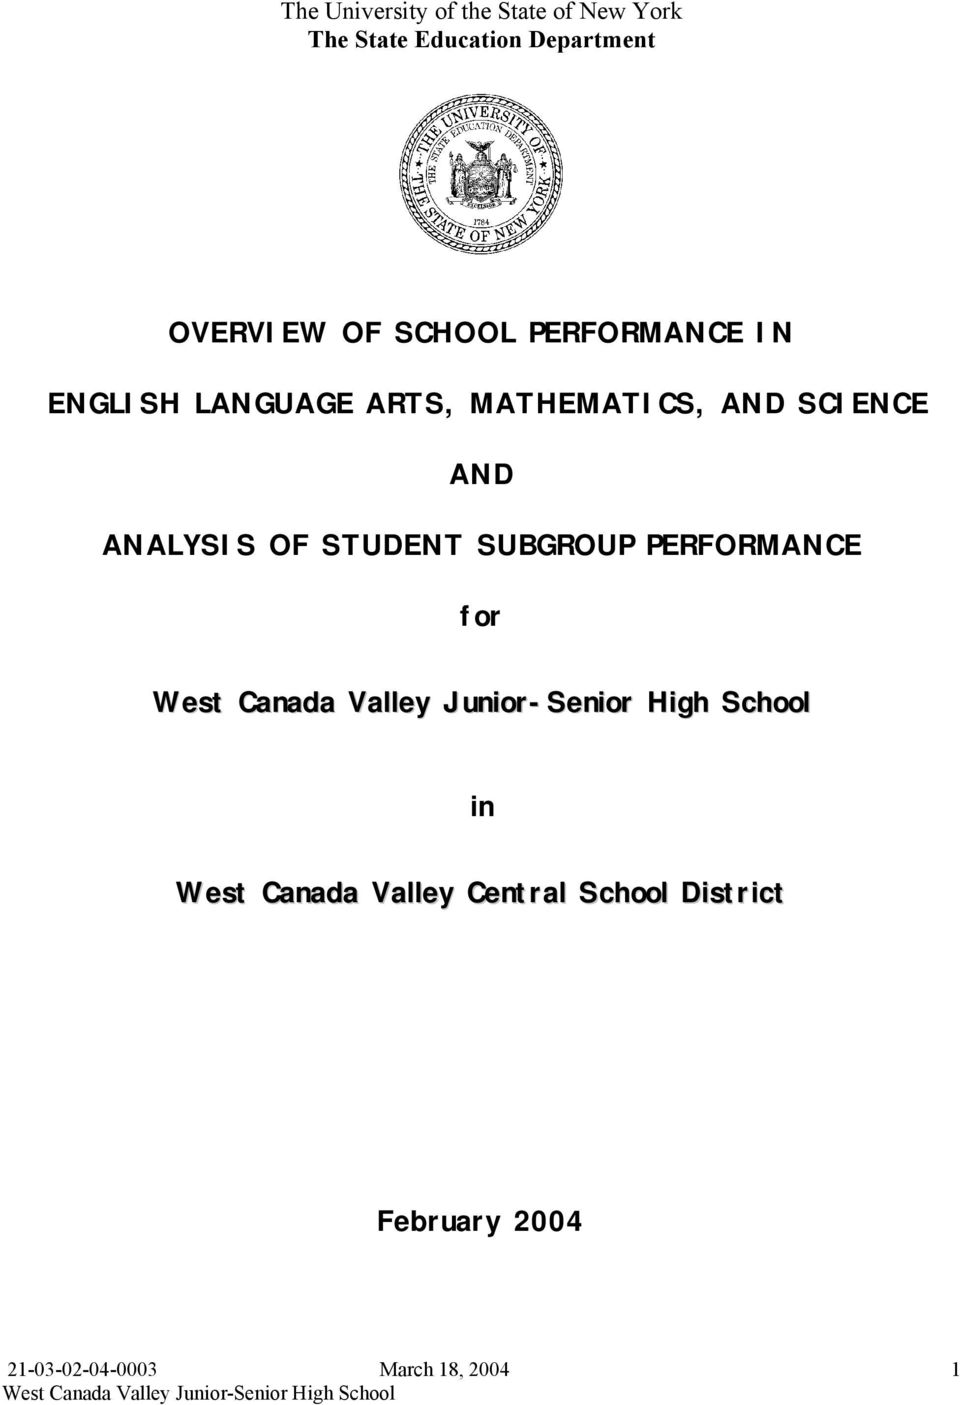 ARTS, MATHEMATICS, AND SCIENCE AND ANALYSIS OF STUDENT SUBGROUP